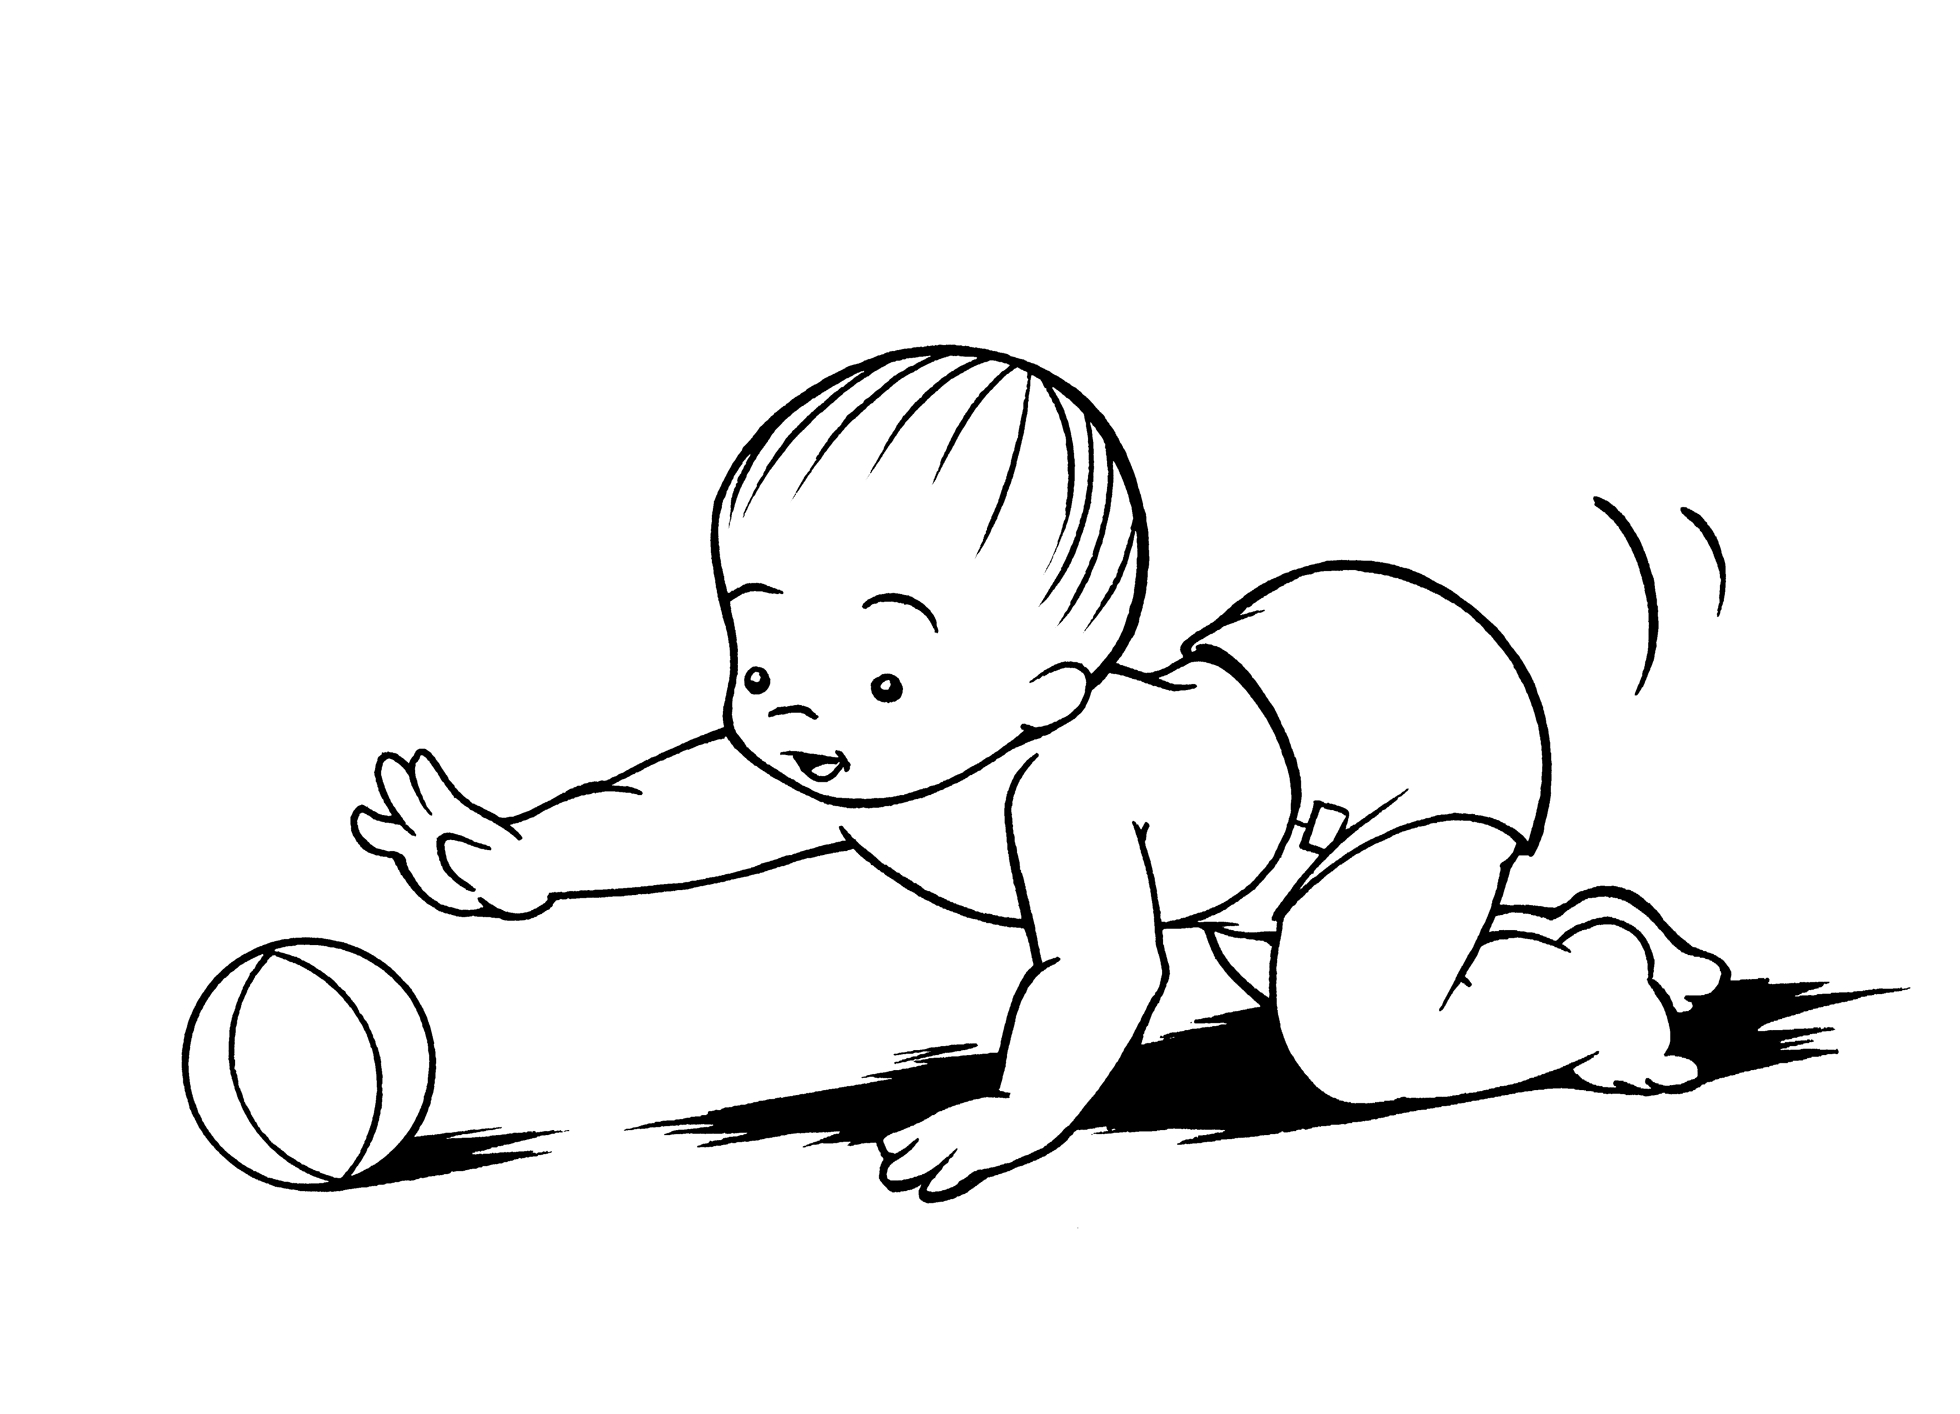 Baby Crawling Drawings Images   Pictures   Becuo